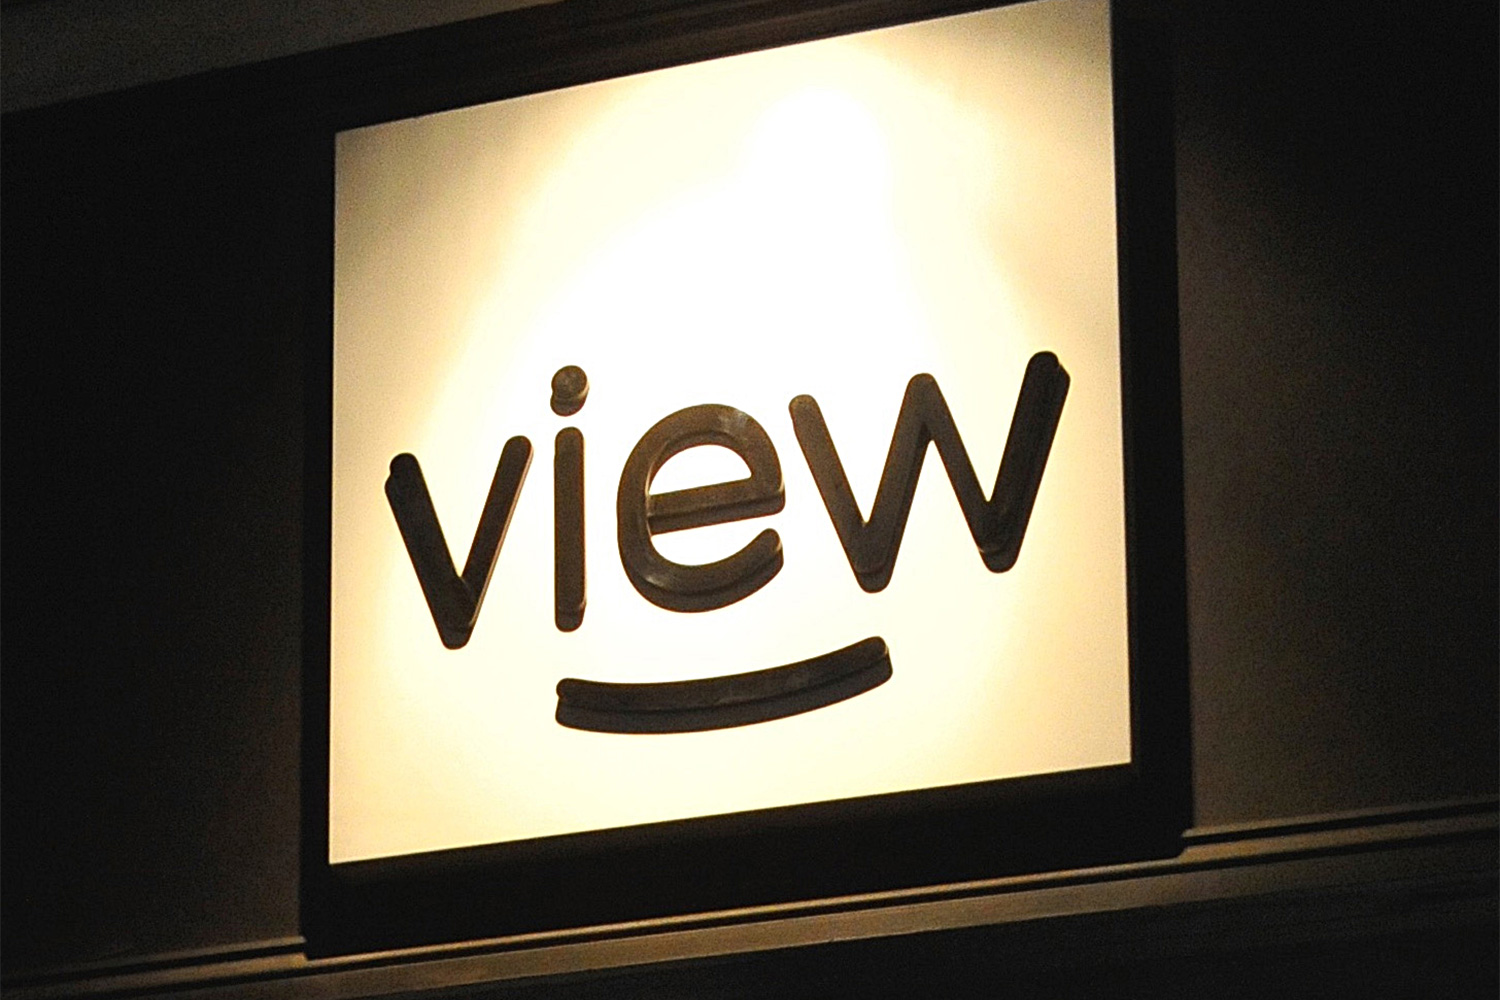 View Art Gallery signage